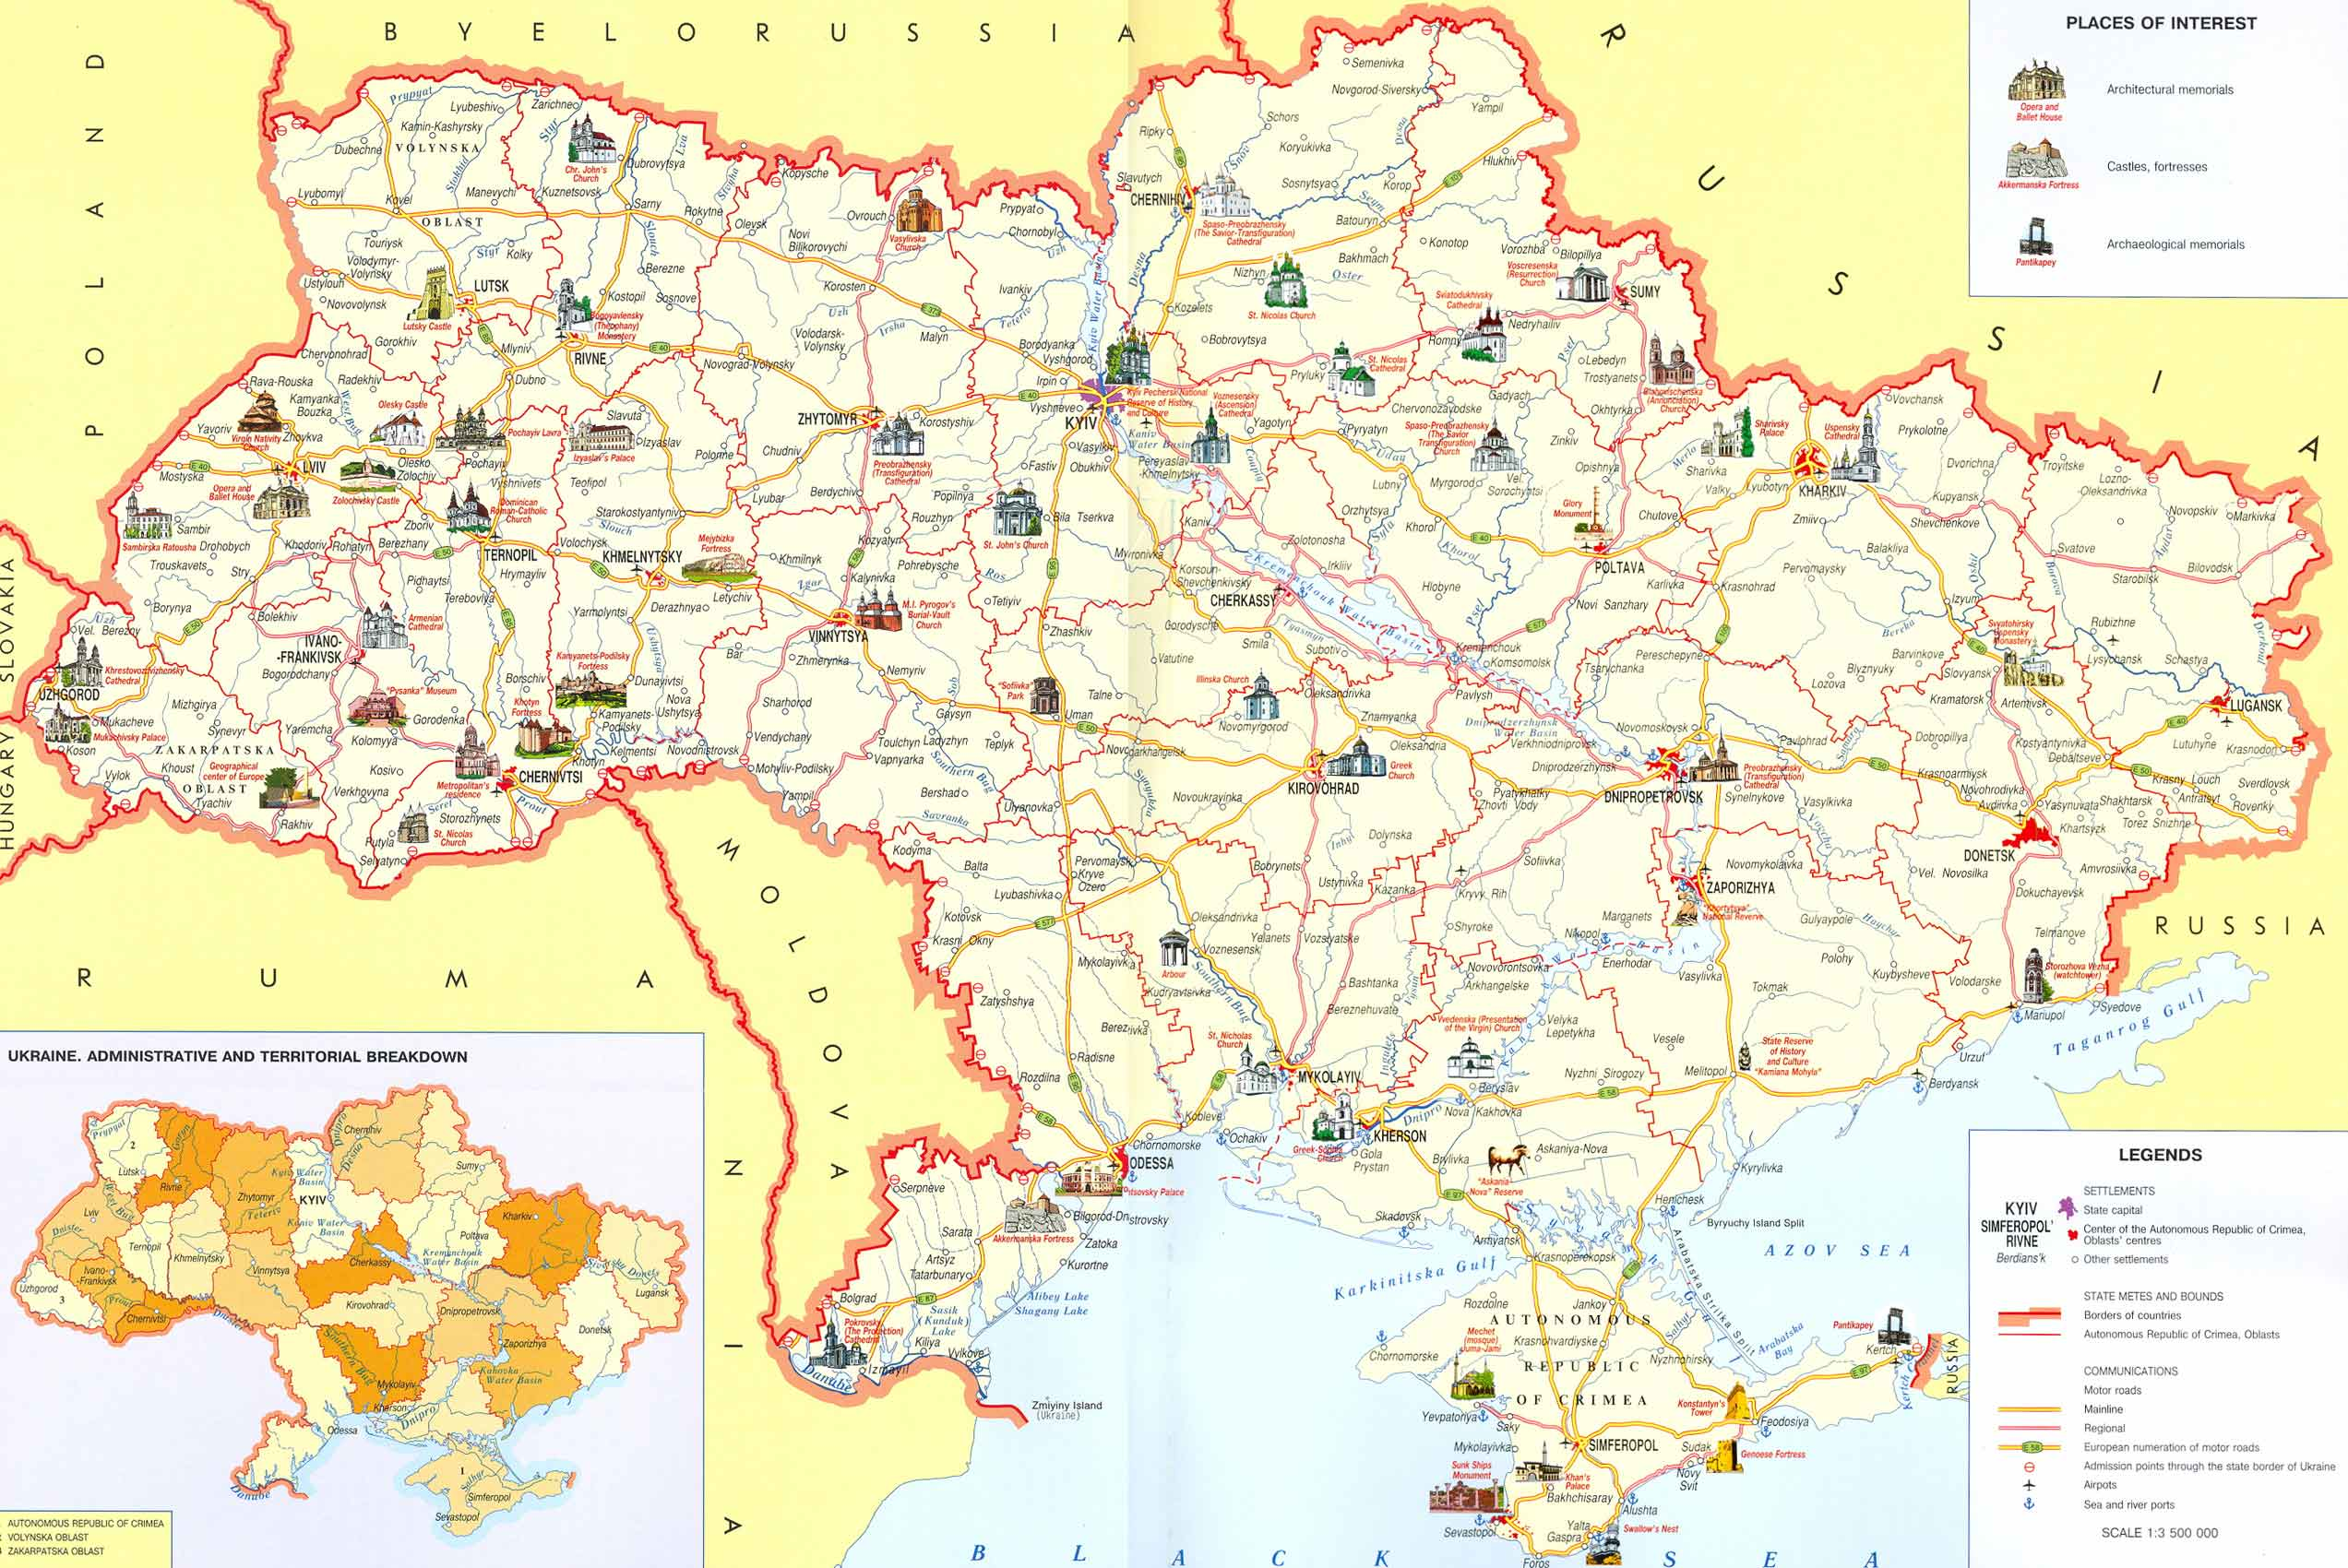 Detailed tourist map of Ukraine 2545x1700